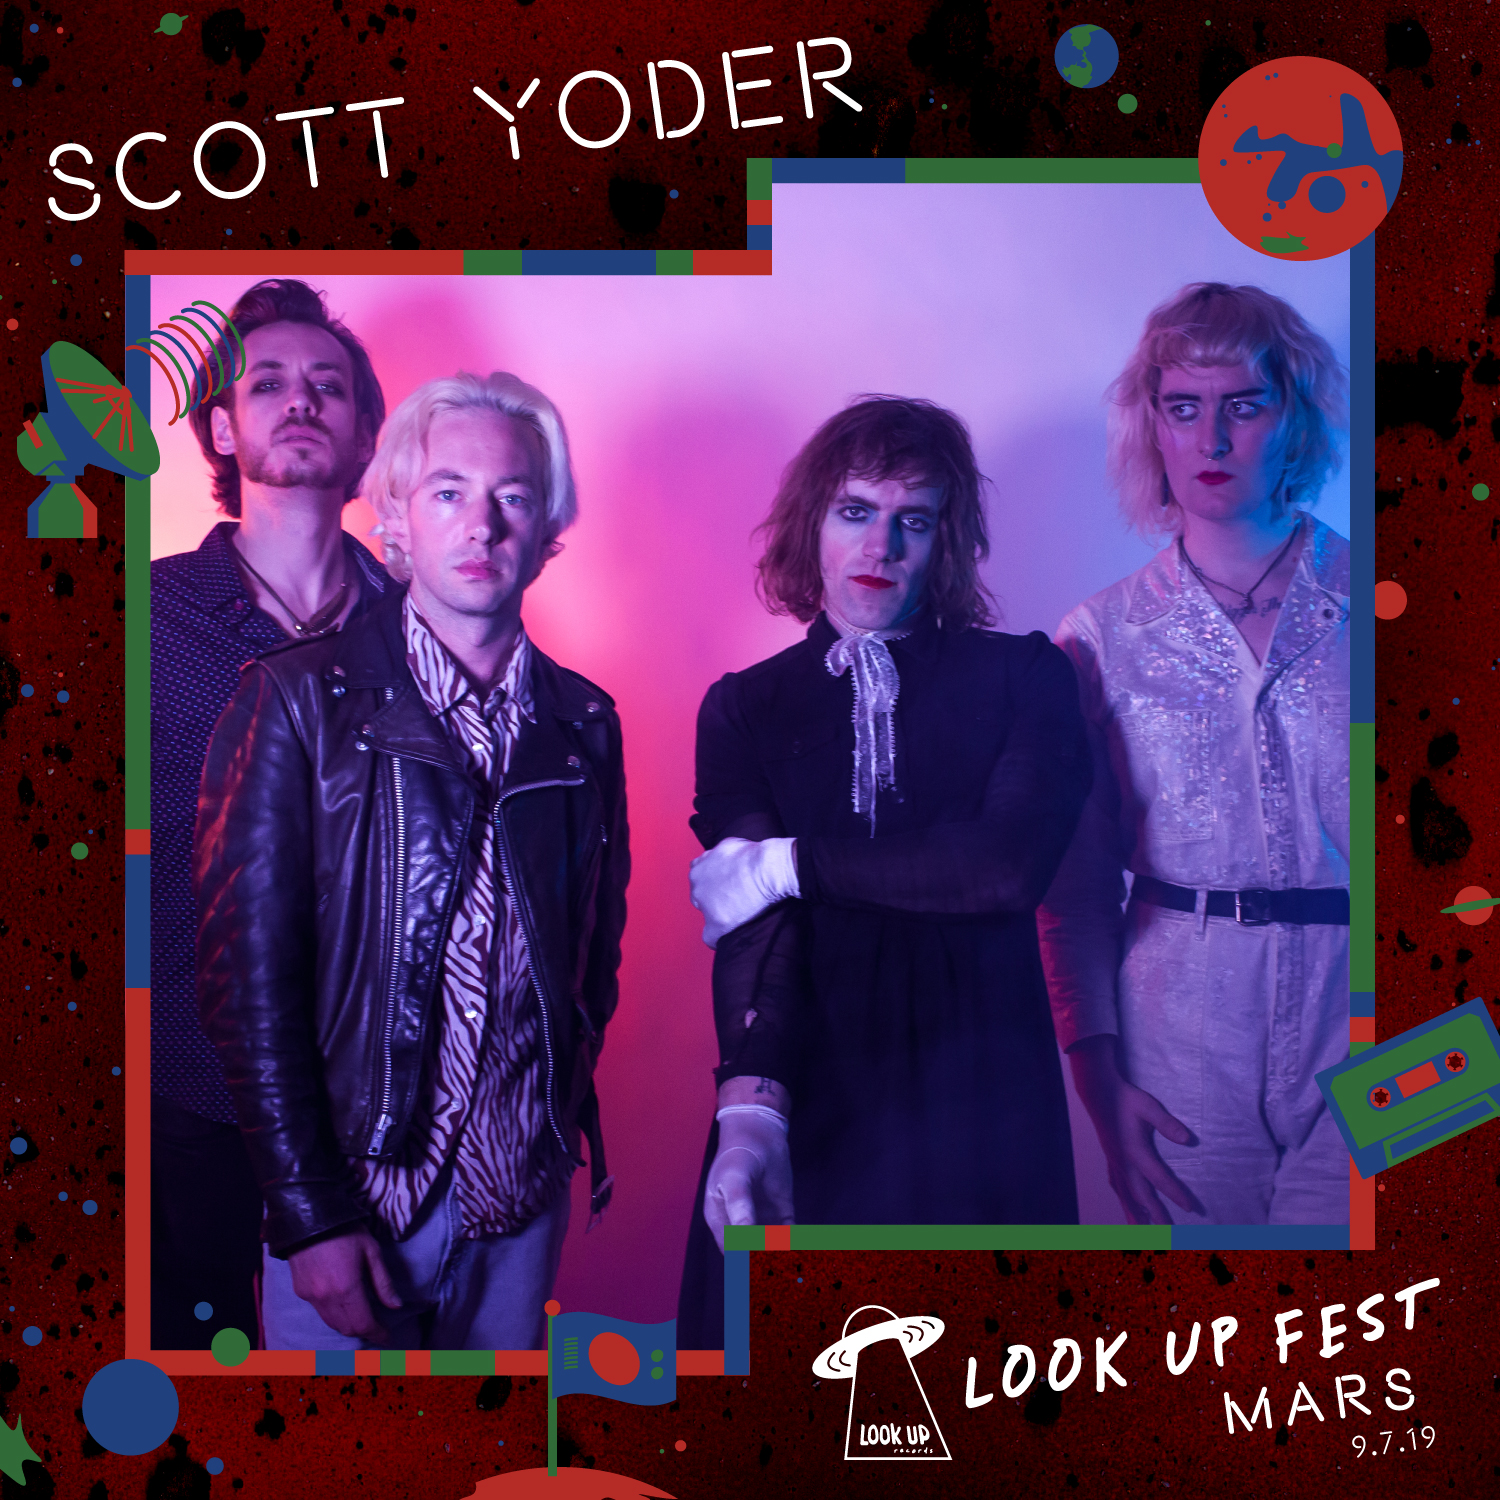 Scott Yoder - Catch Scott Yoder headline Look Up Fest: Mars on 9/7!